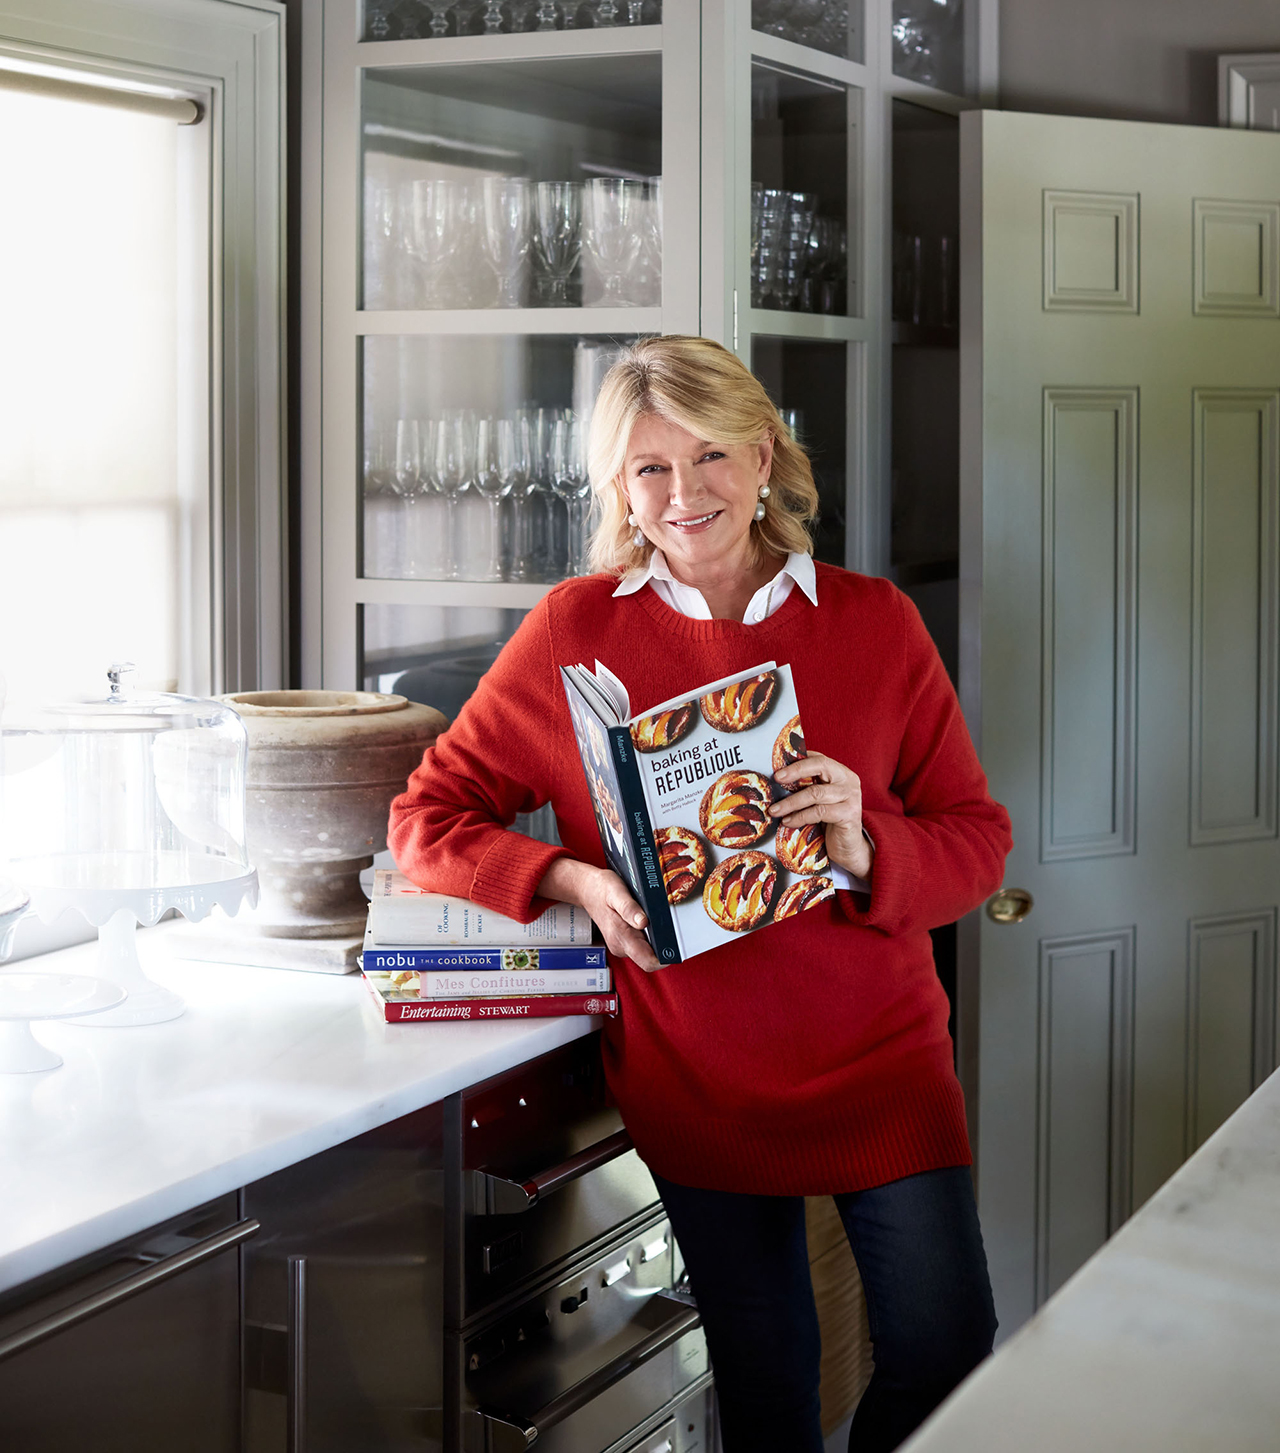 martha holding baking cook book in kitchen